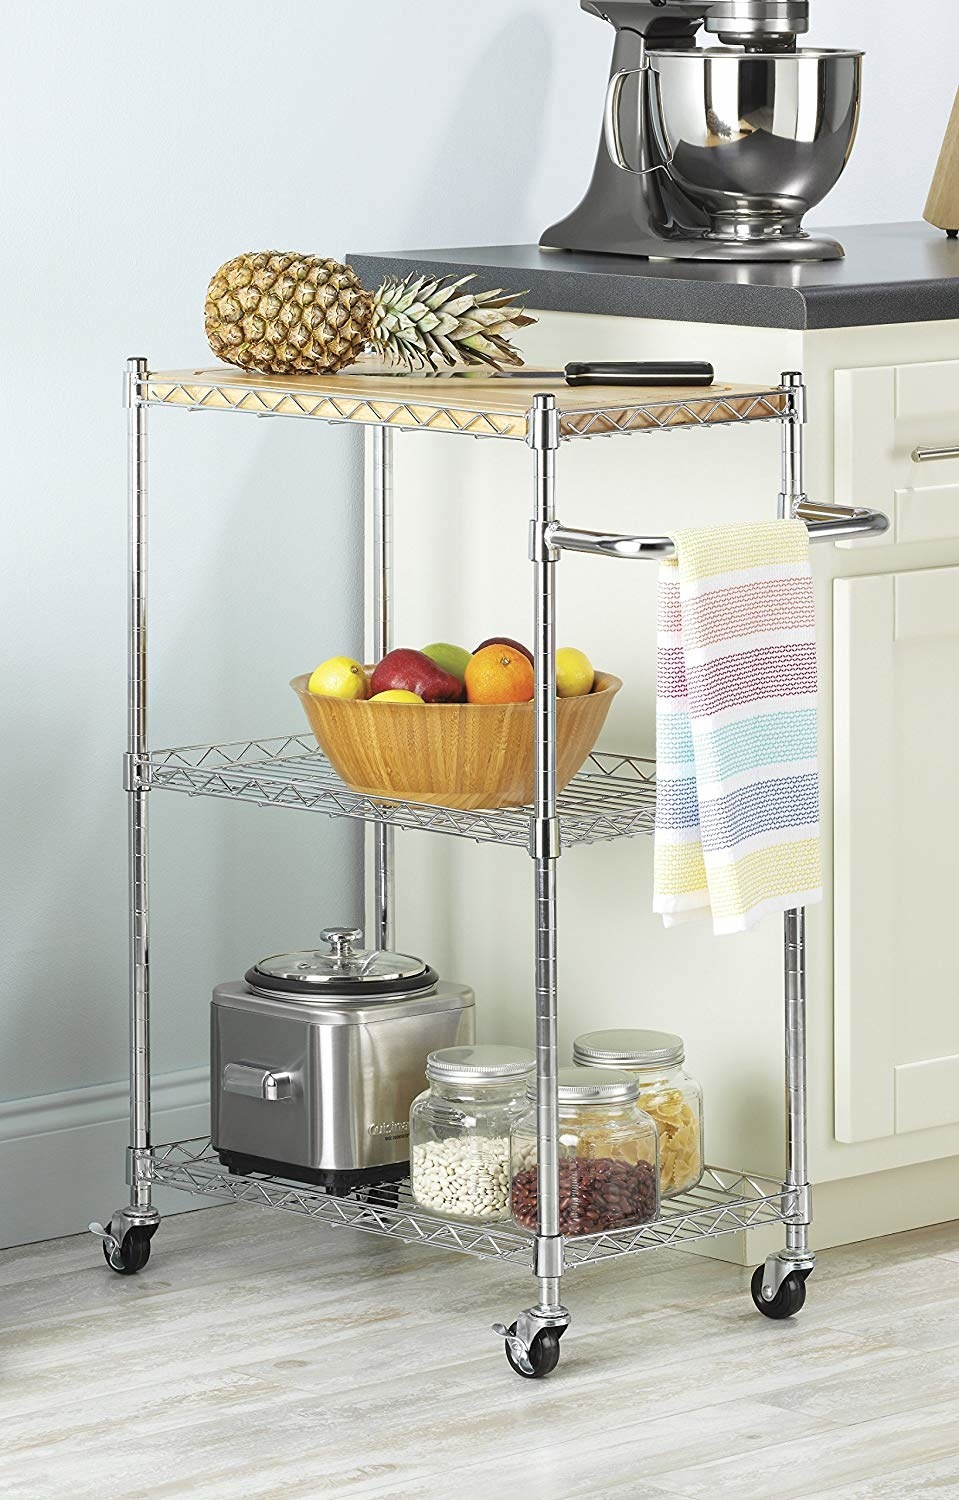 The silver metal three-tier kitchen cart with a wood cutting board on top and assorted kitchen products on it